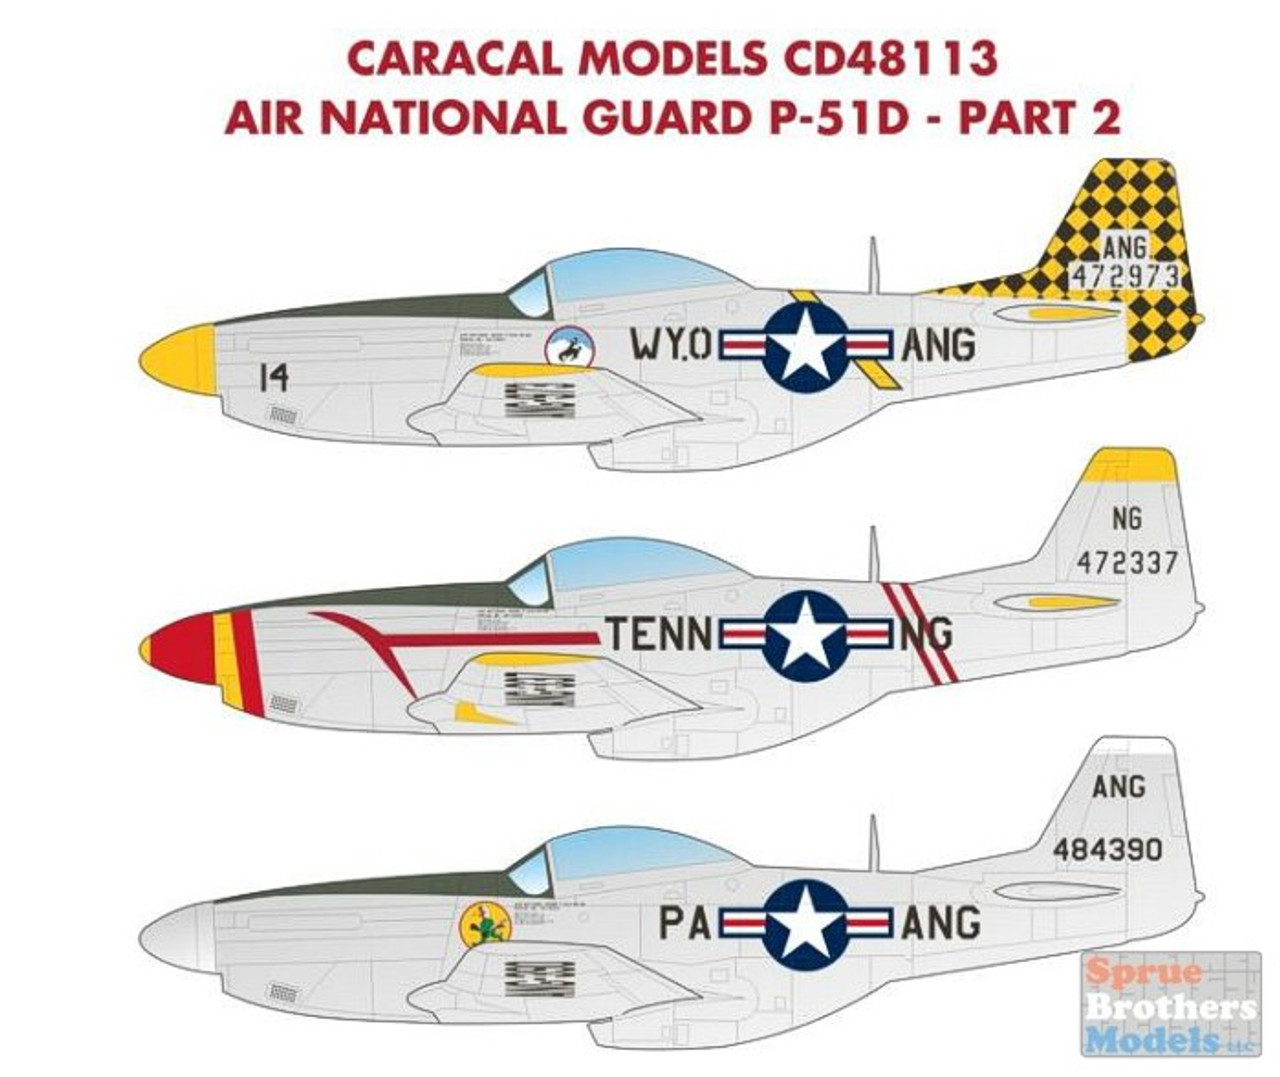 CARCD48113 1:48 Caracal Models Decals - Air National Guard P-51D Mustangs Part 2: Wyoming, Tennessee & Pennsylvania ANG